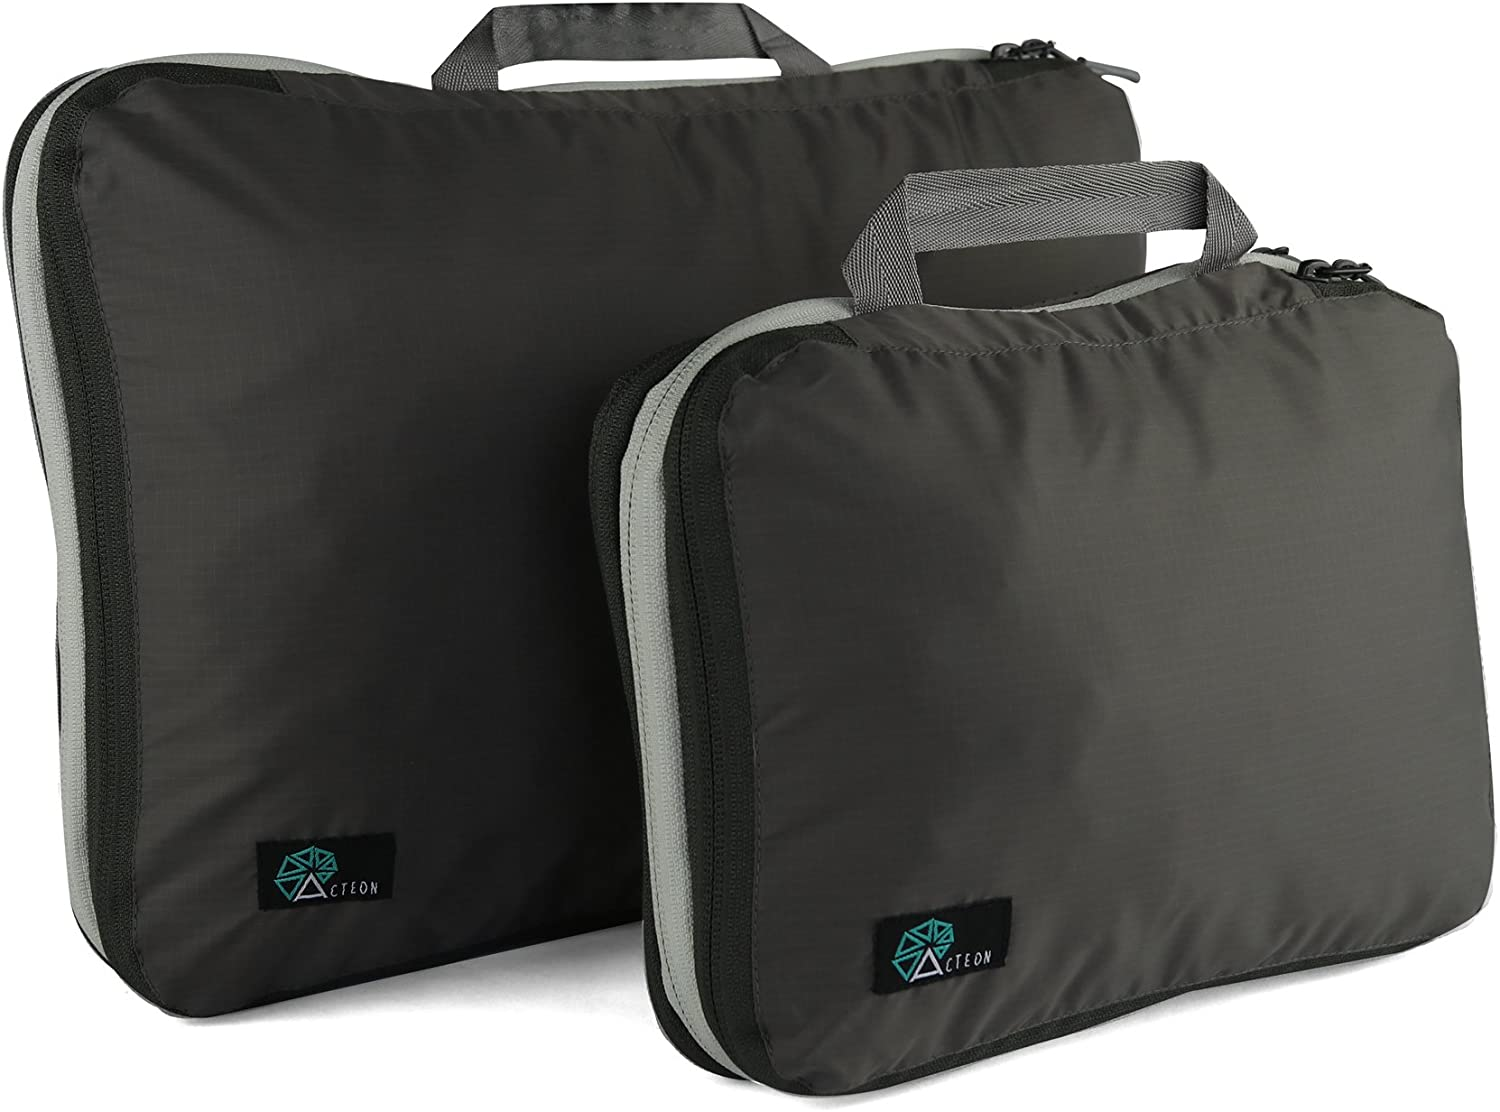 Max 87% OFF Acteon Compression Packing Cubes for Clean Travel Separate shop D -